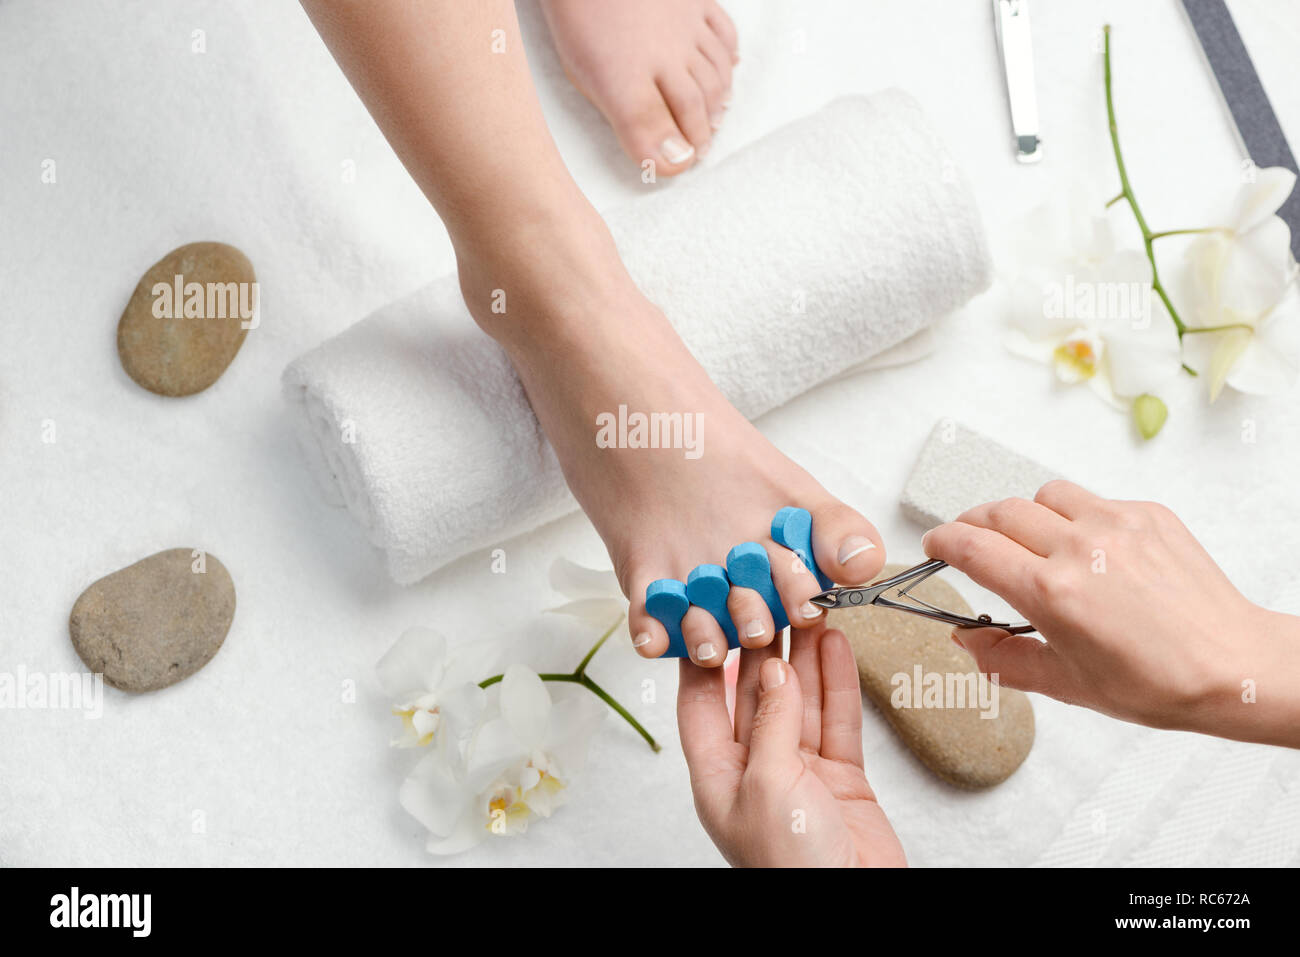 Pedicurist cutting cuticle with nippers - Stock Image